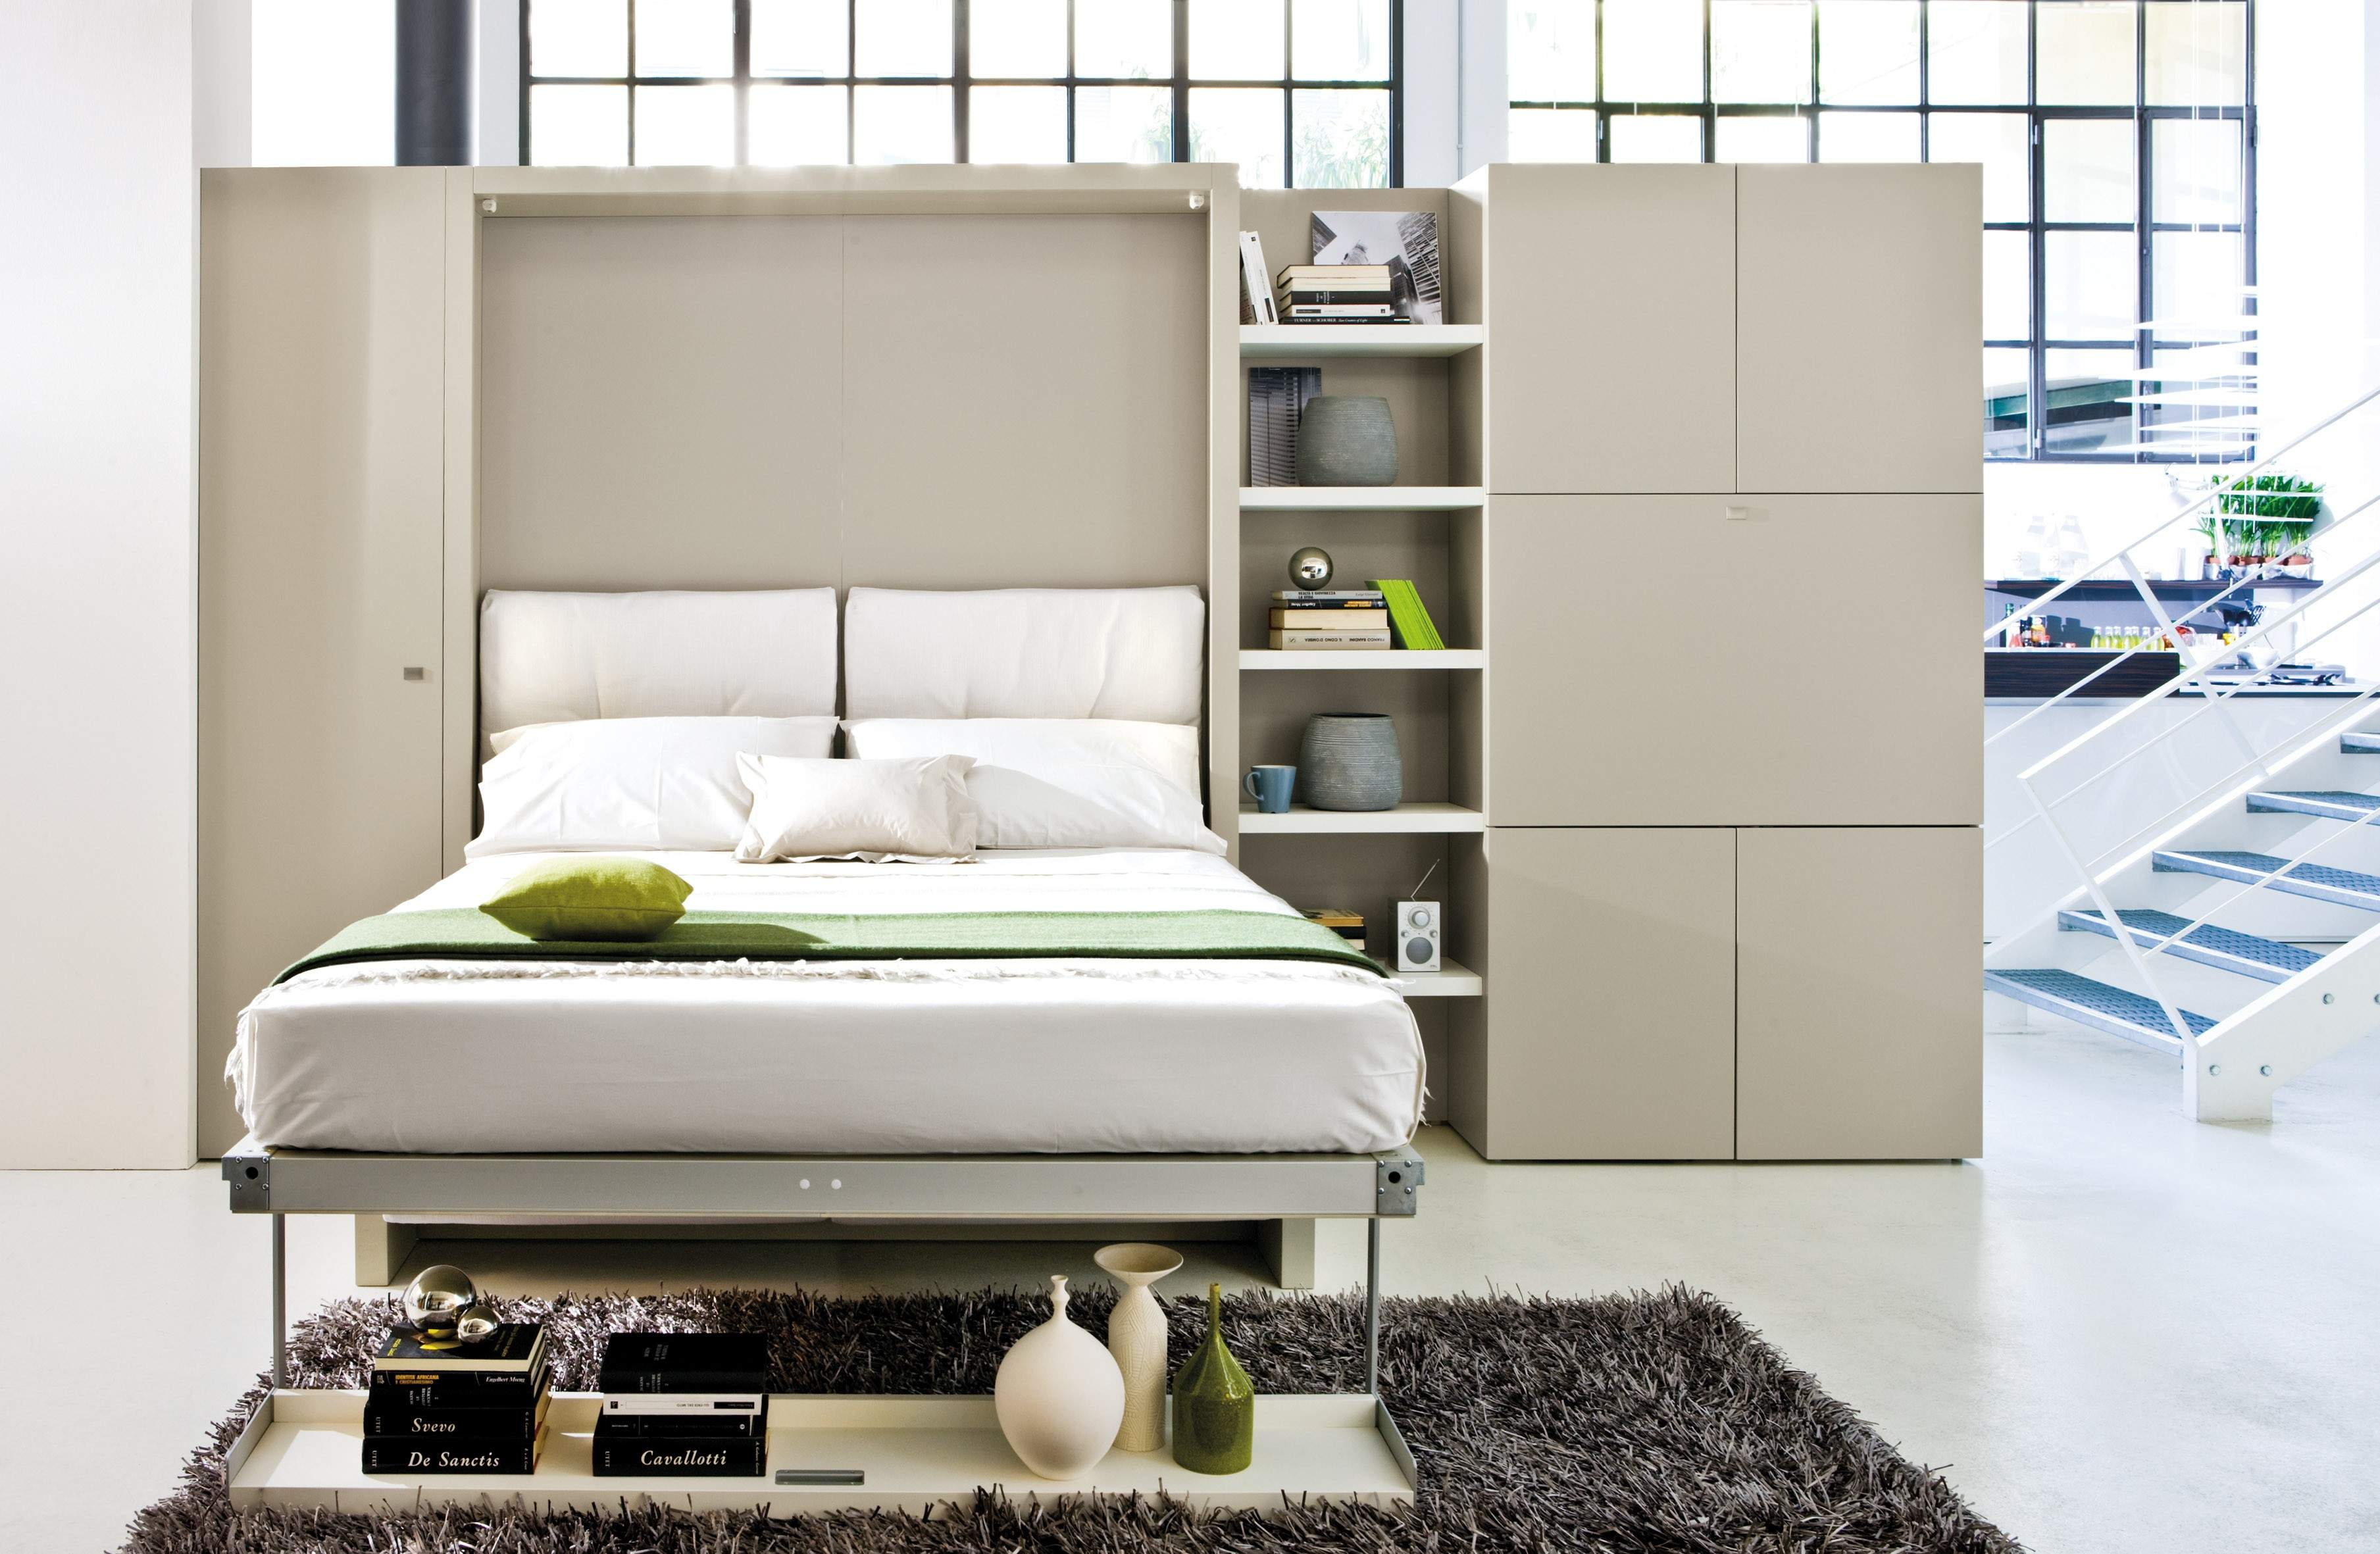 Space Storage Solutions Room Designs Currrently